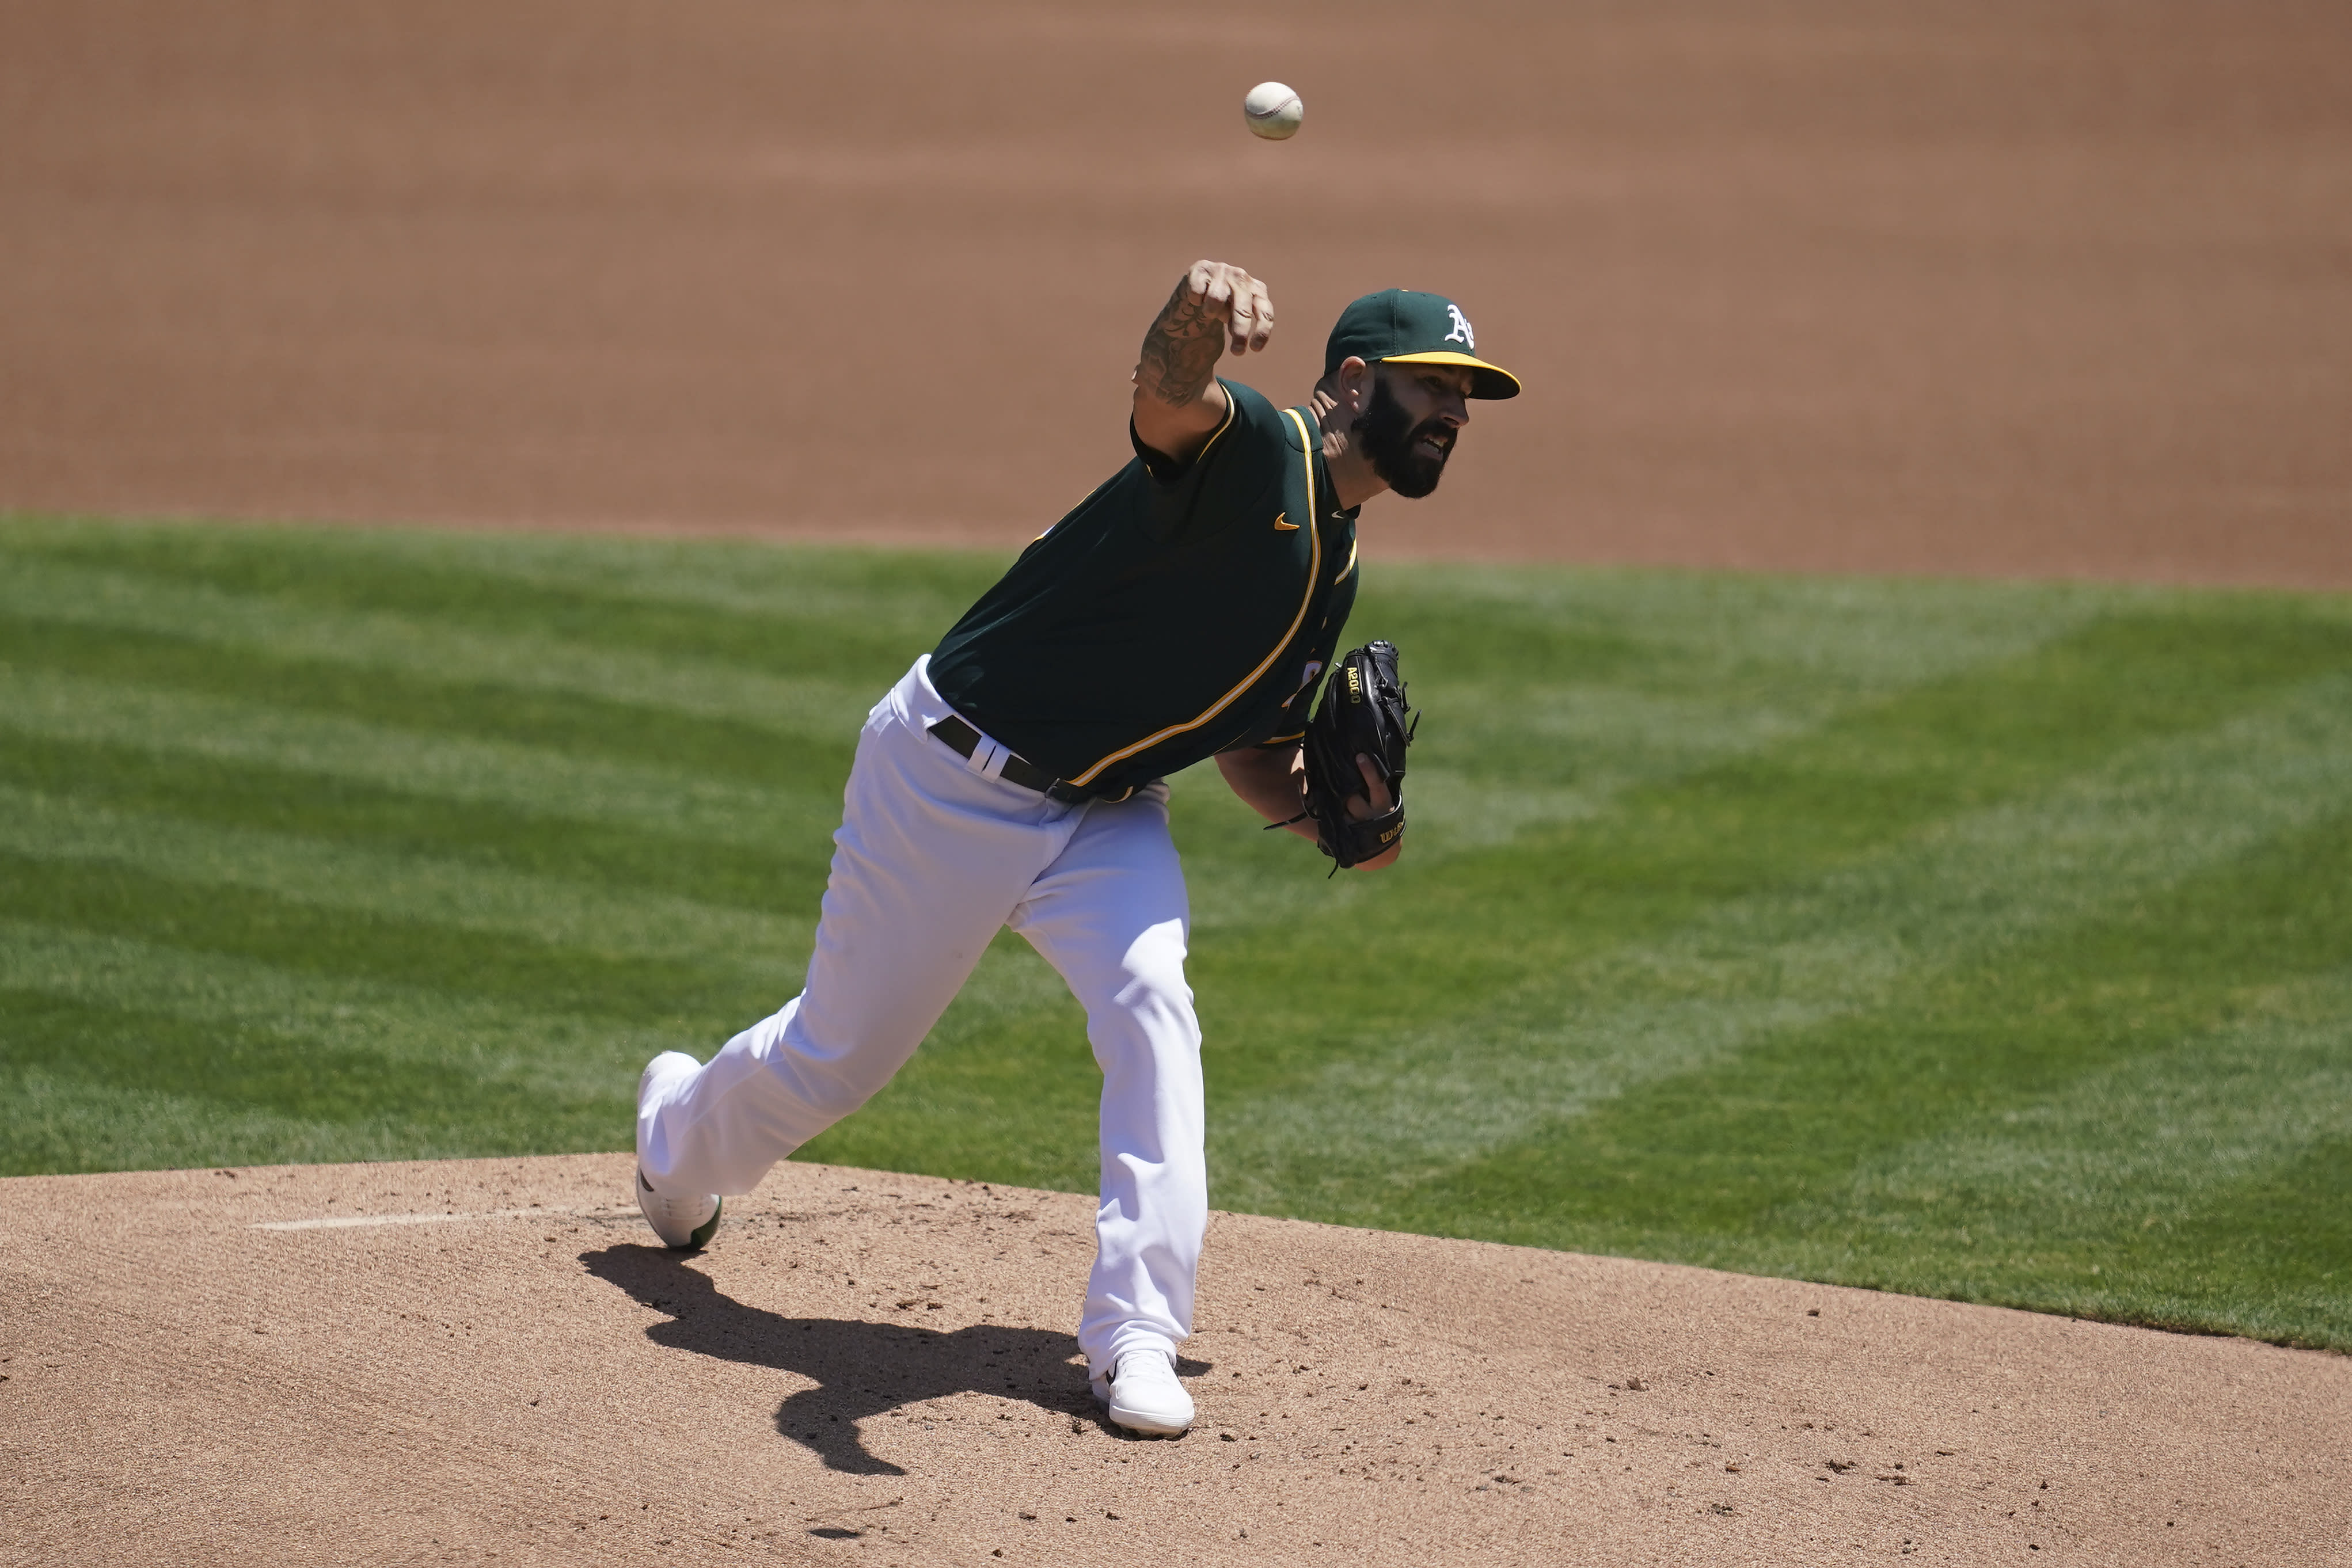 Oakland Athletics pitcher Mike Fiers throws against the Los Angeles Angels during the first inning of a baseball game in Oakland, Calif., Sunday, July 26, 2020. (AP Photo/Jeff Chiu)